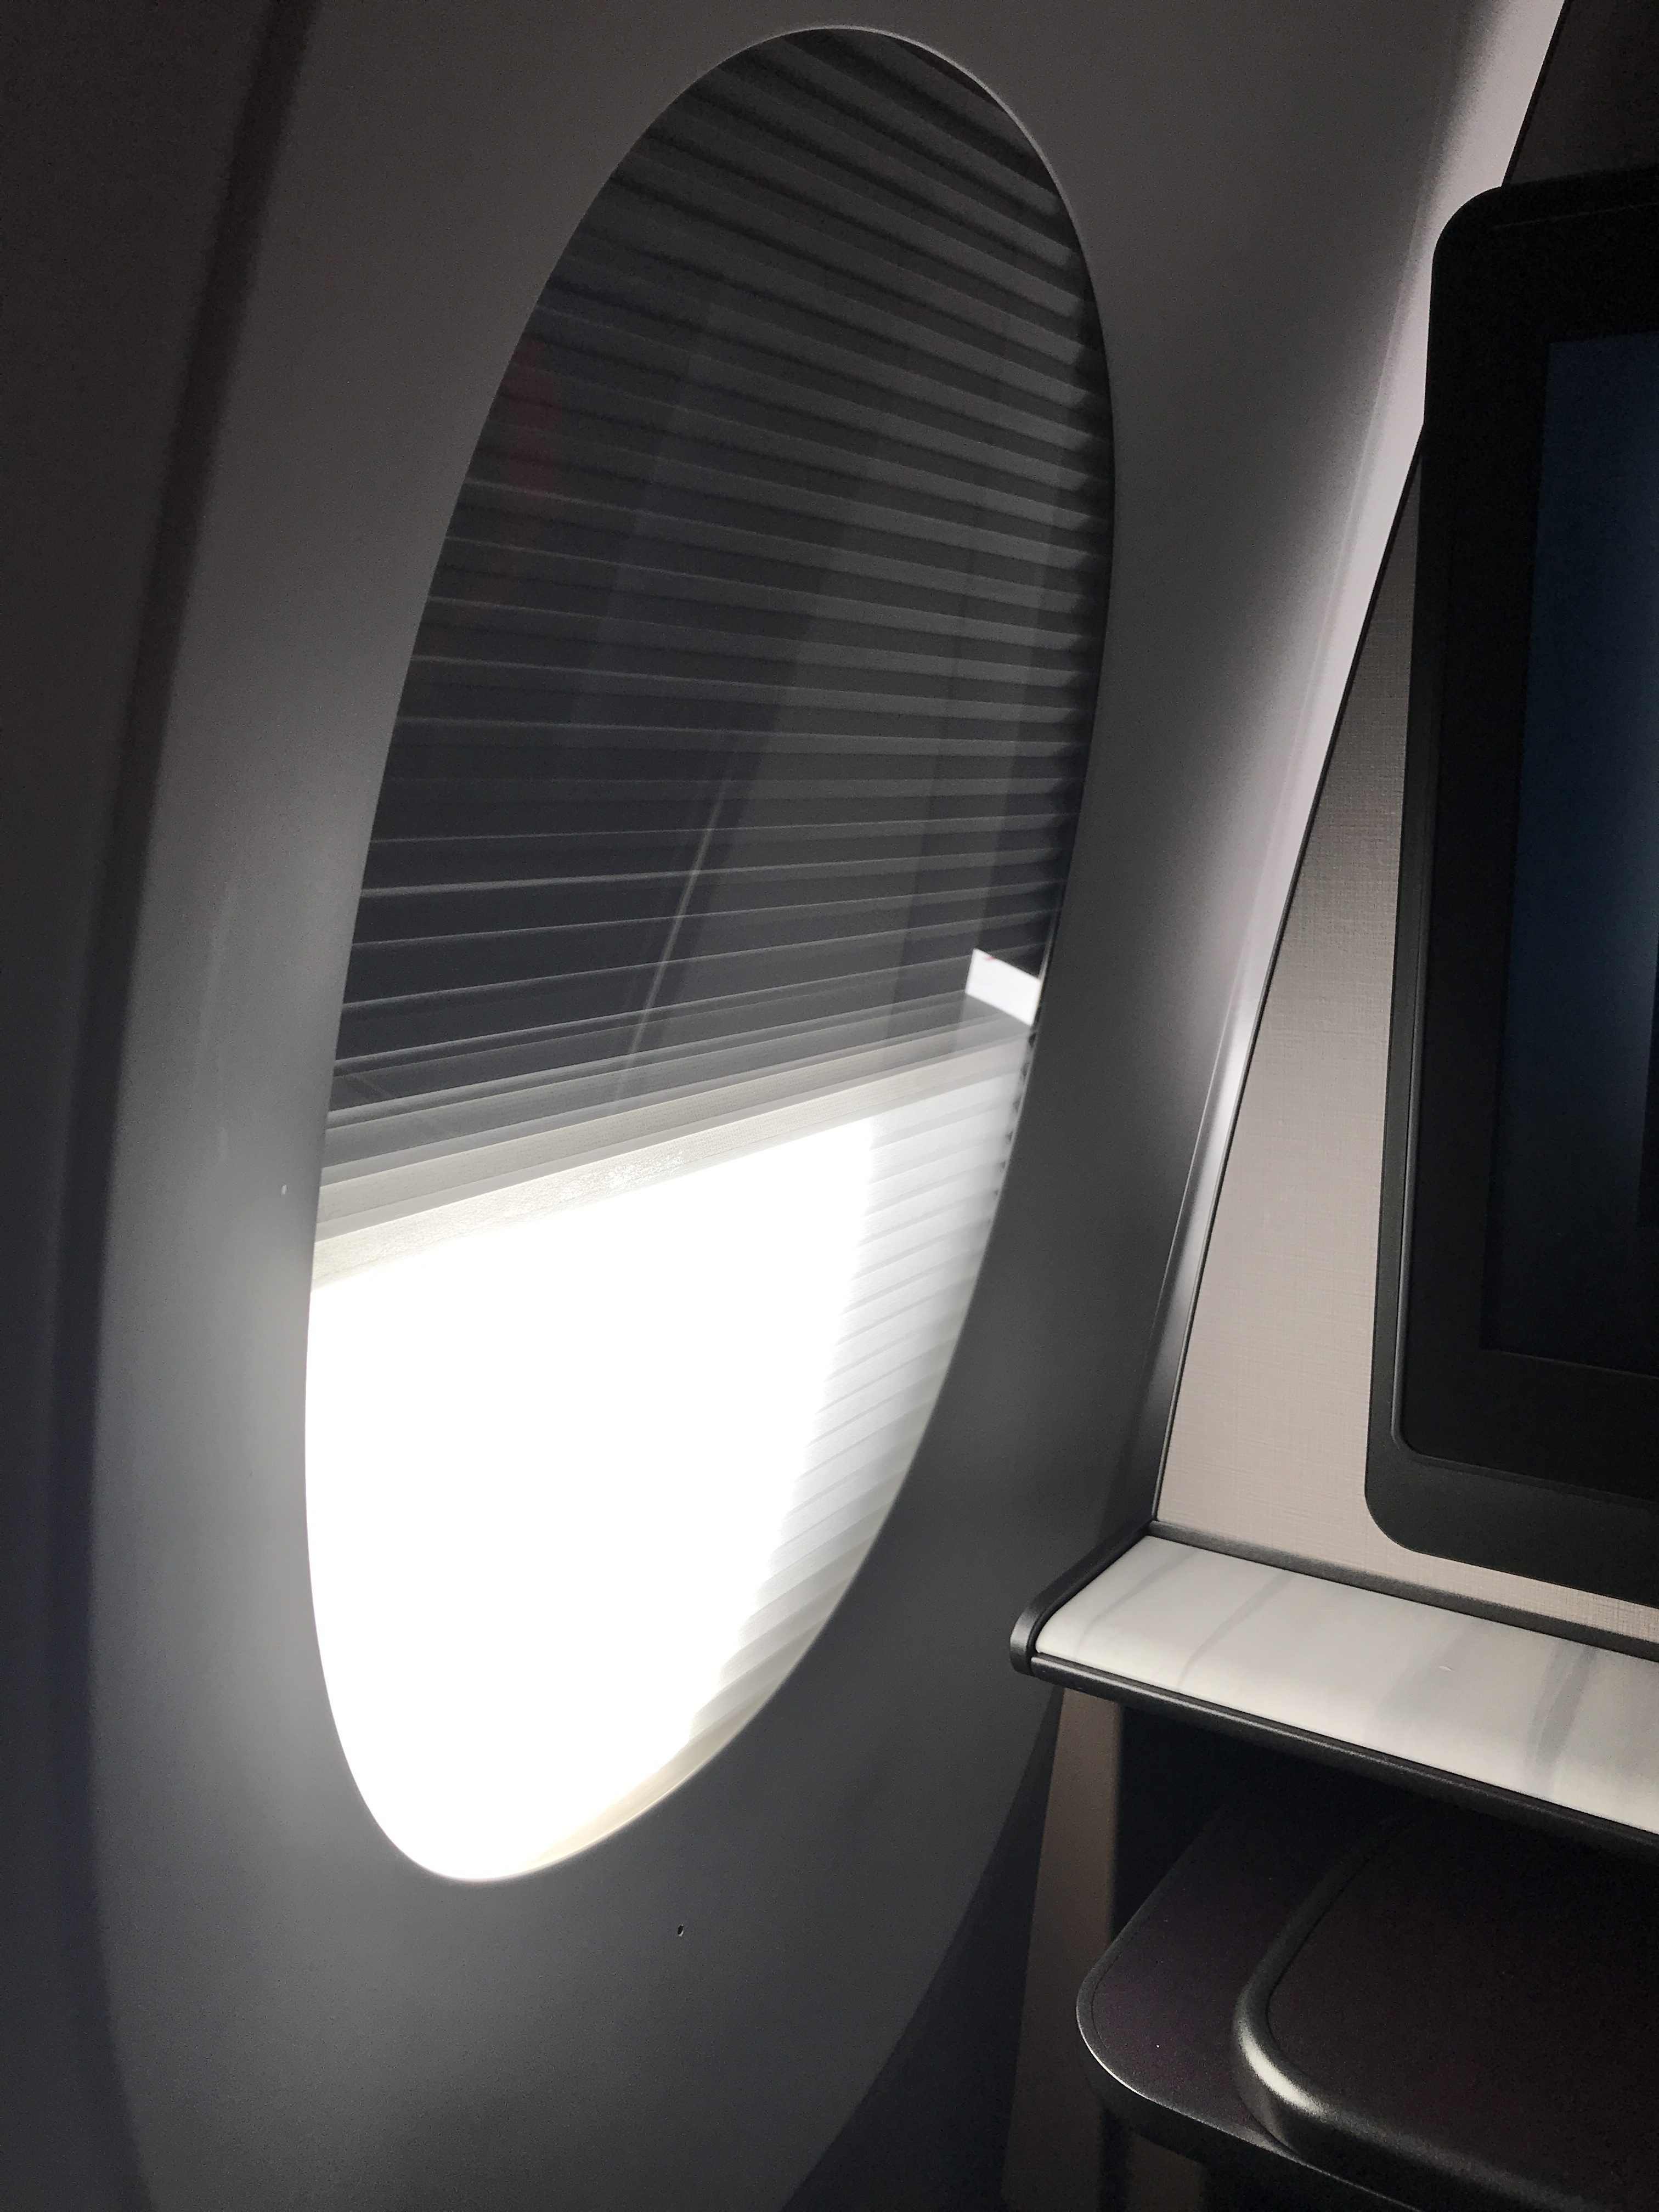 Qatar Airways QSuites A350-900 business class review blind